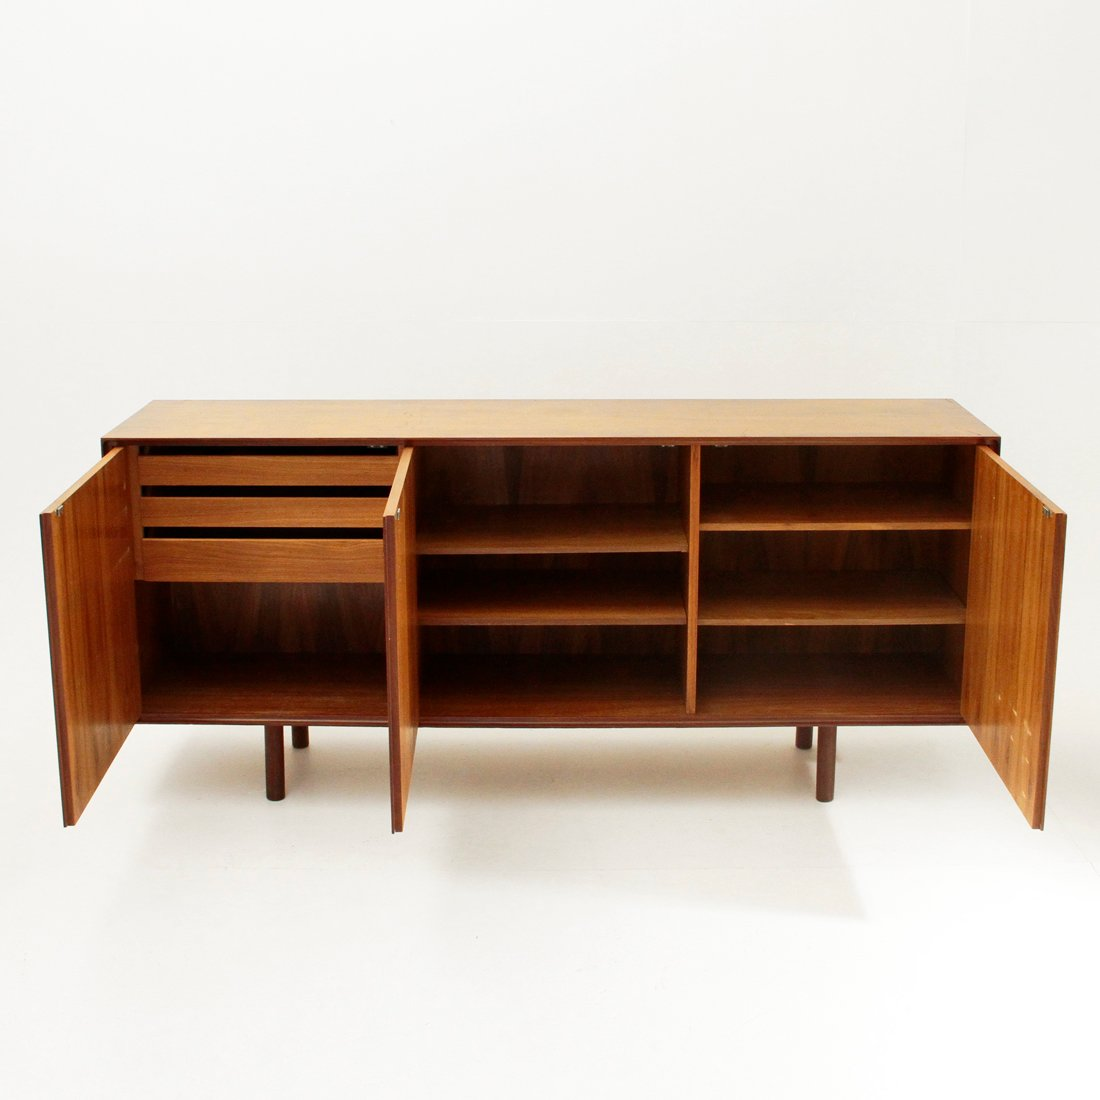 Mid century italian sideboard 1960s for sale at pamono for Sideboard 2 m breit